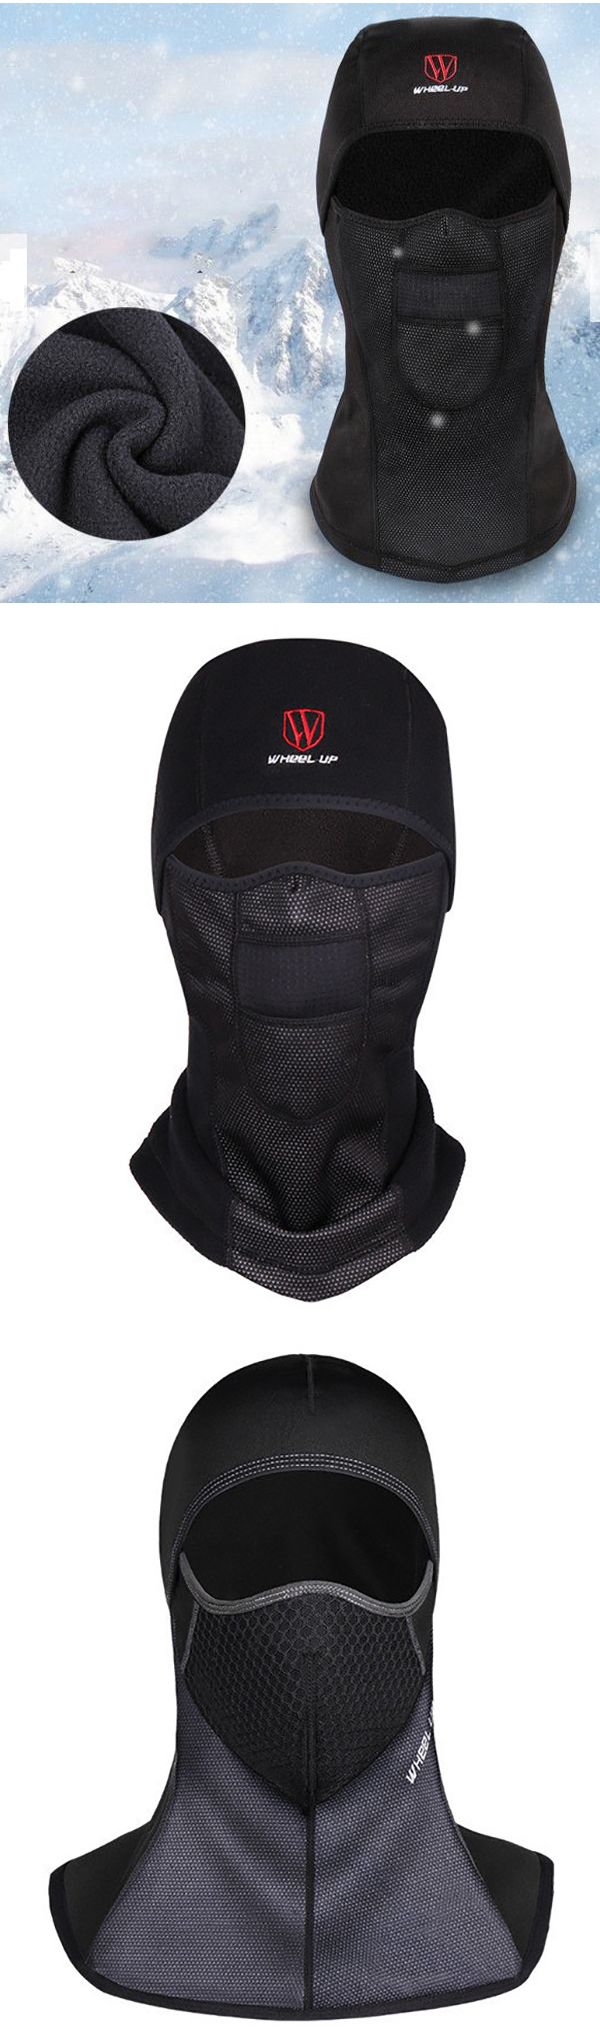 Winter Outfit: Warm Fleece Full Hood  Windproof Hat: Dustproof/Waterproof #men #winter